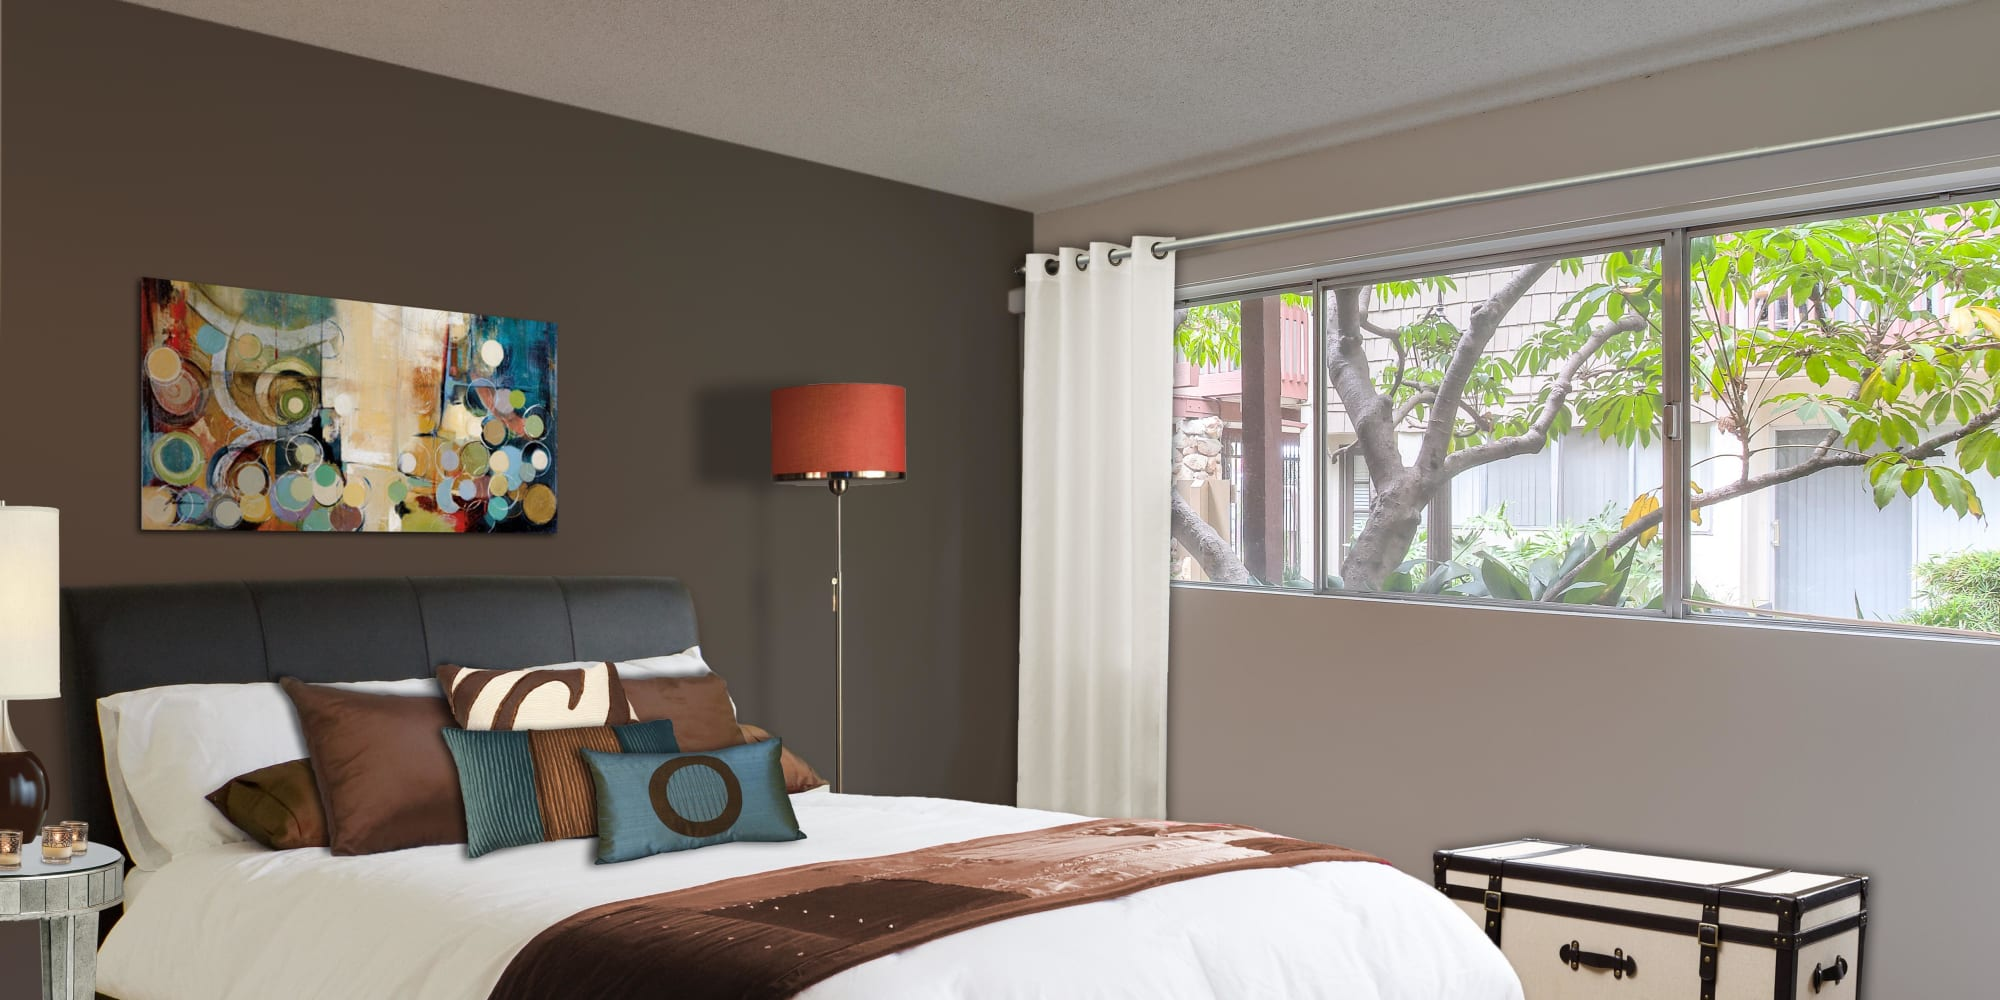 Accent wall and modern furnishings in a model apartment's bedroom at Rancho Los Feliz in Los Angeles, California